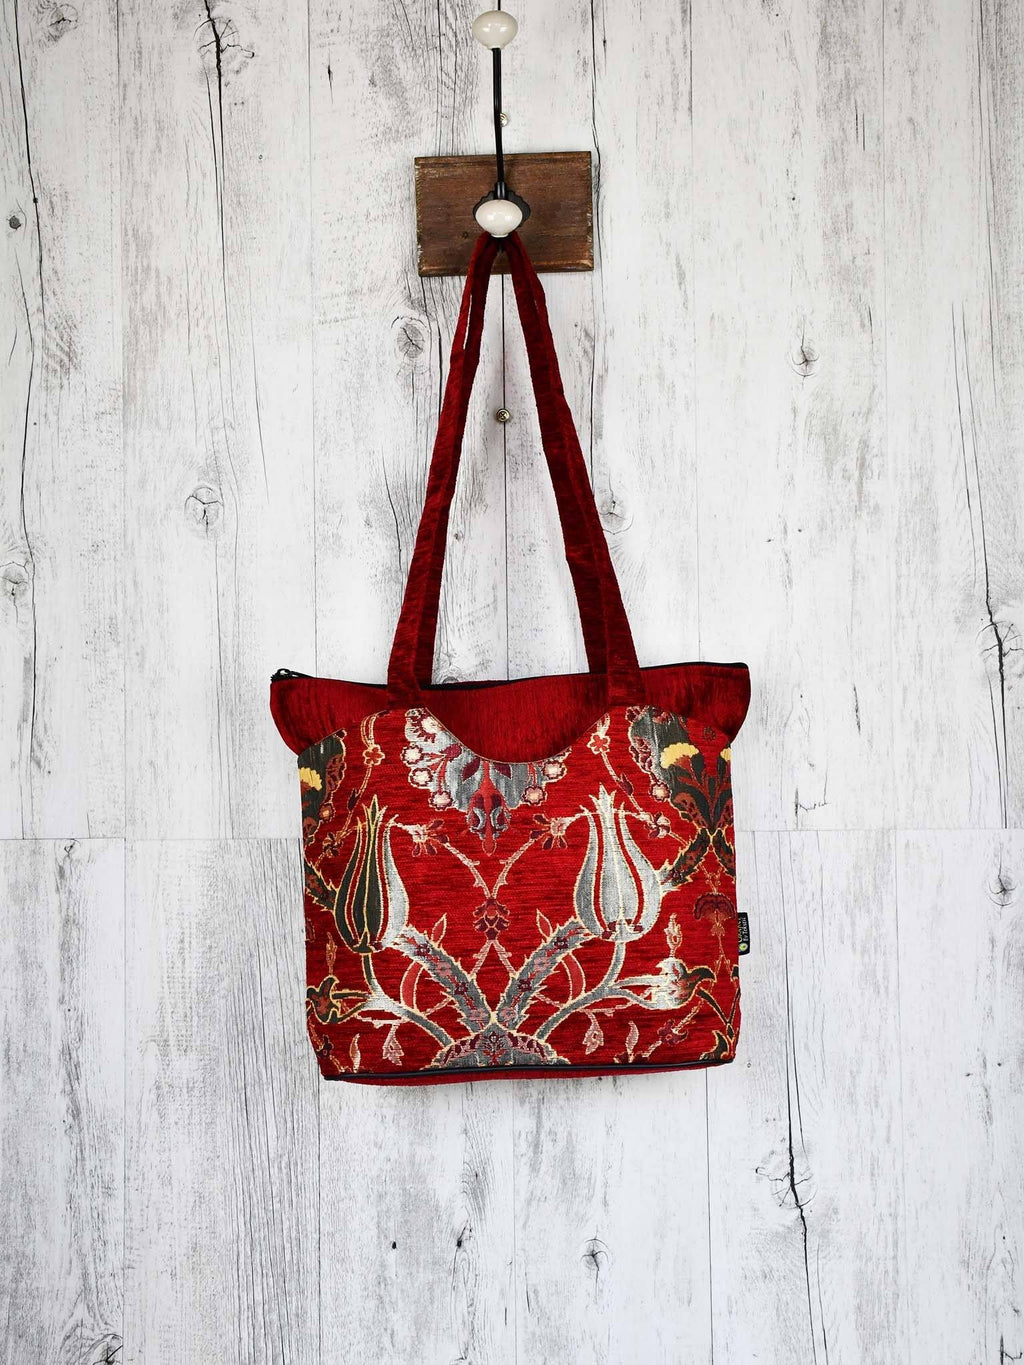 Turkish Handbag Tote Flower Red Textile Sydney Grand Bazaar